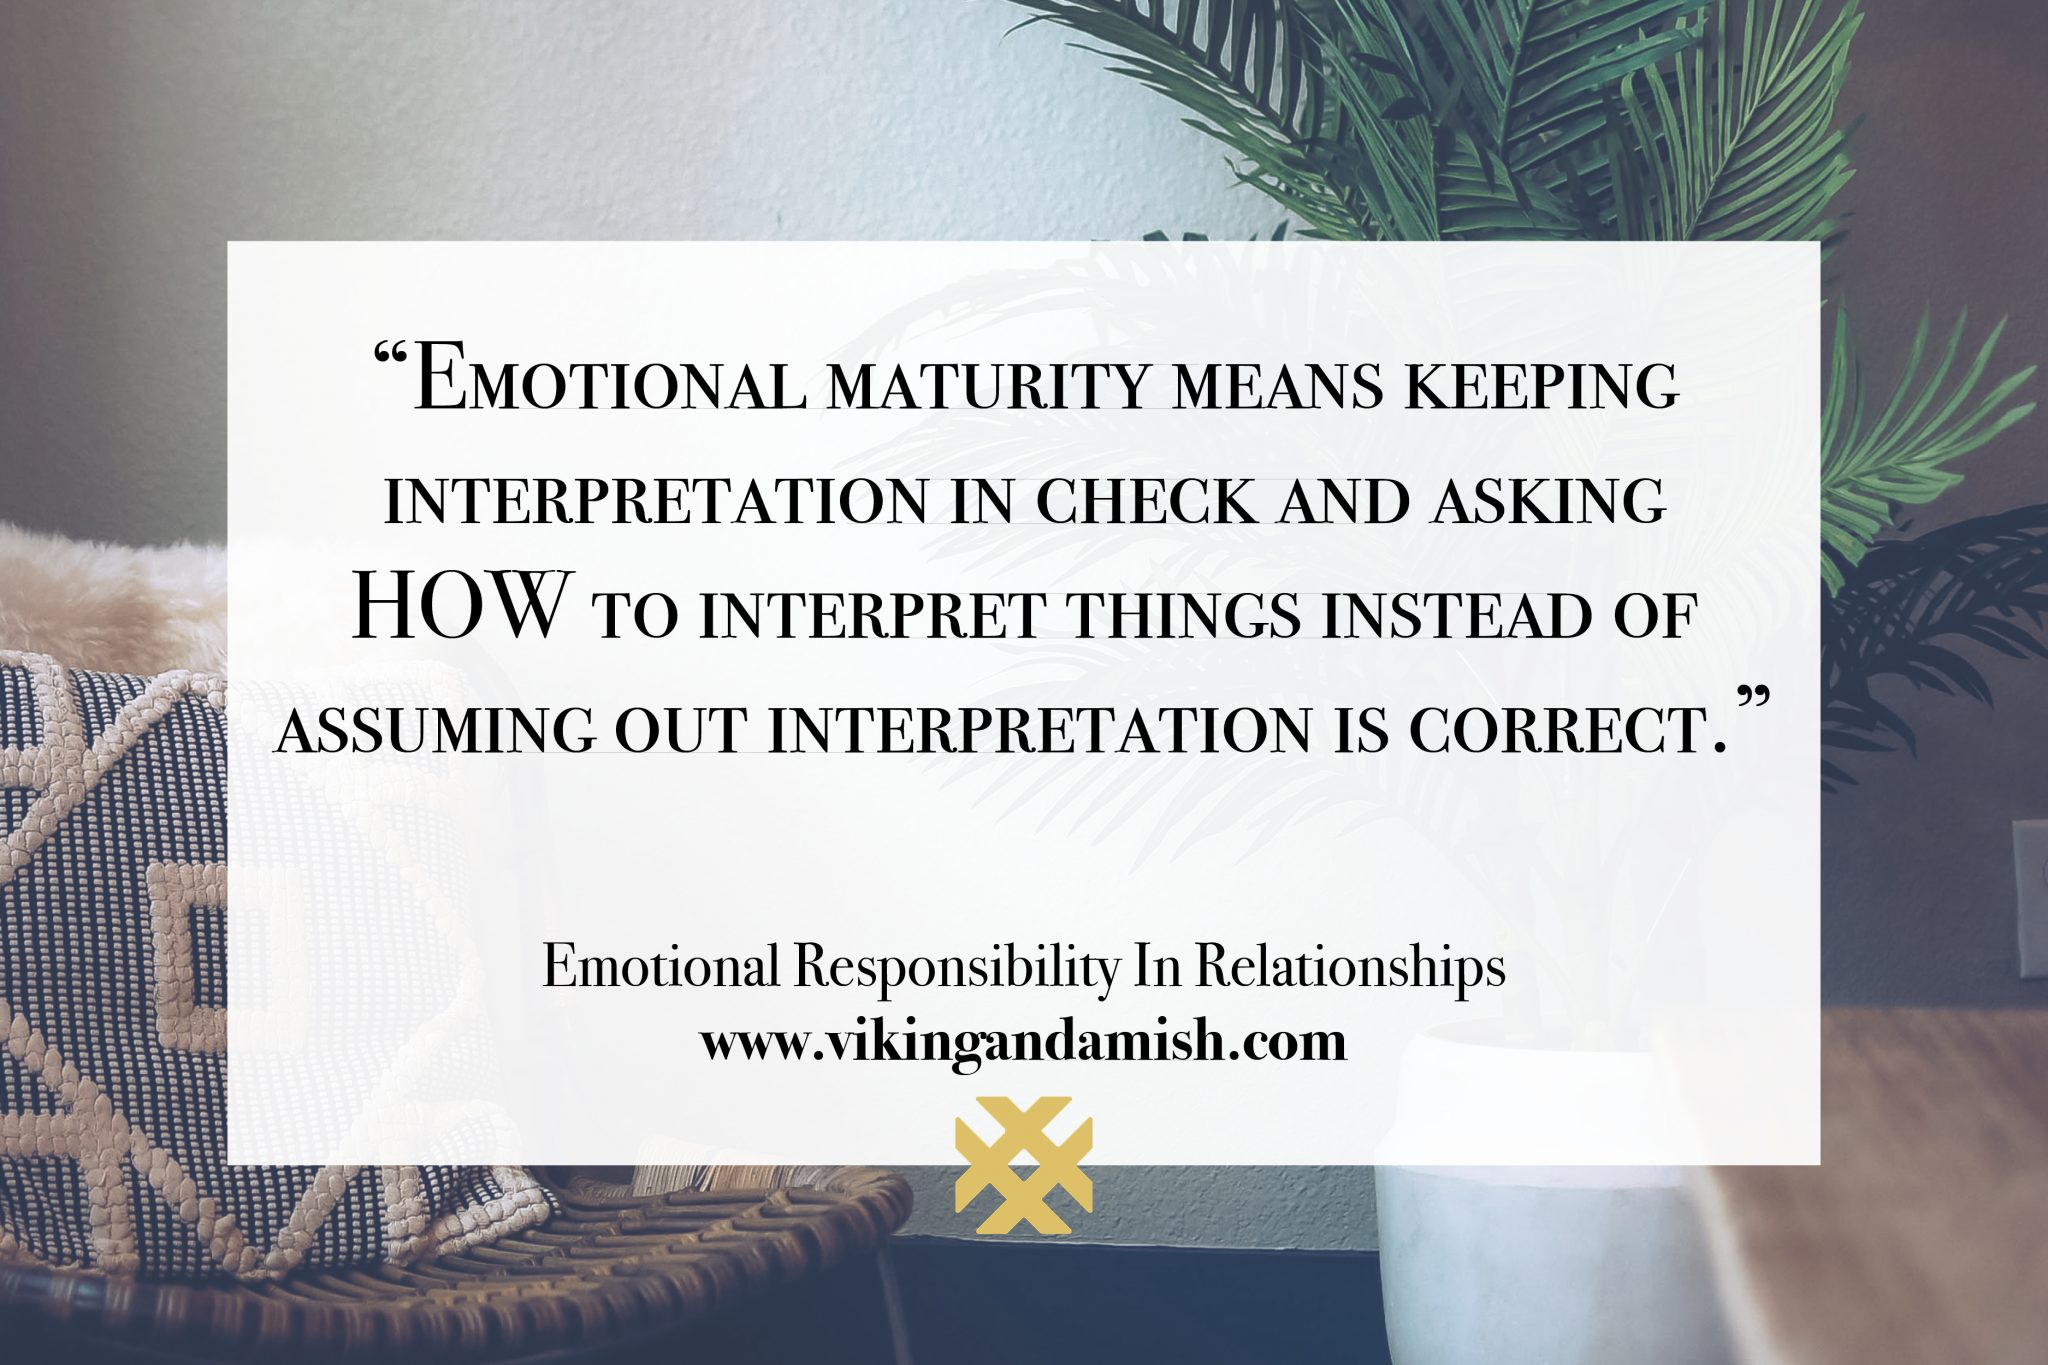 Emotional maturity means keeping interpretation in check and asking HOW to interpret things instead of assuming out interpretation is correct